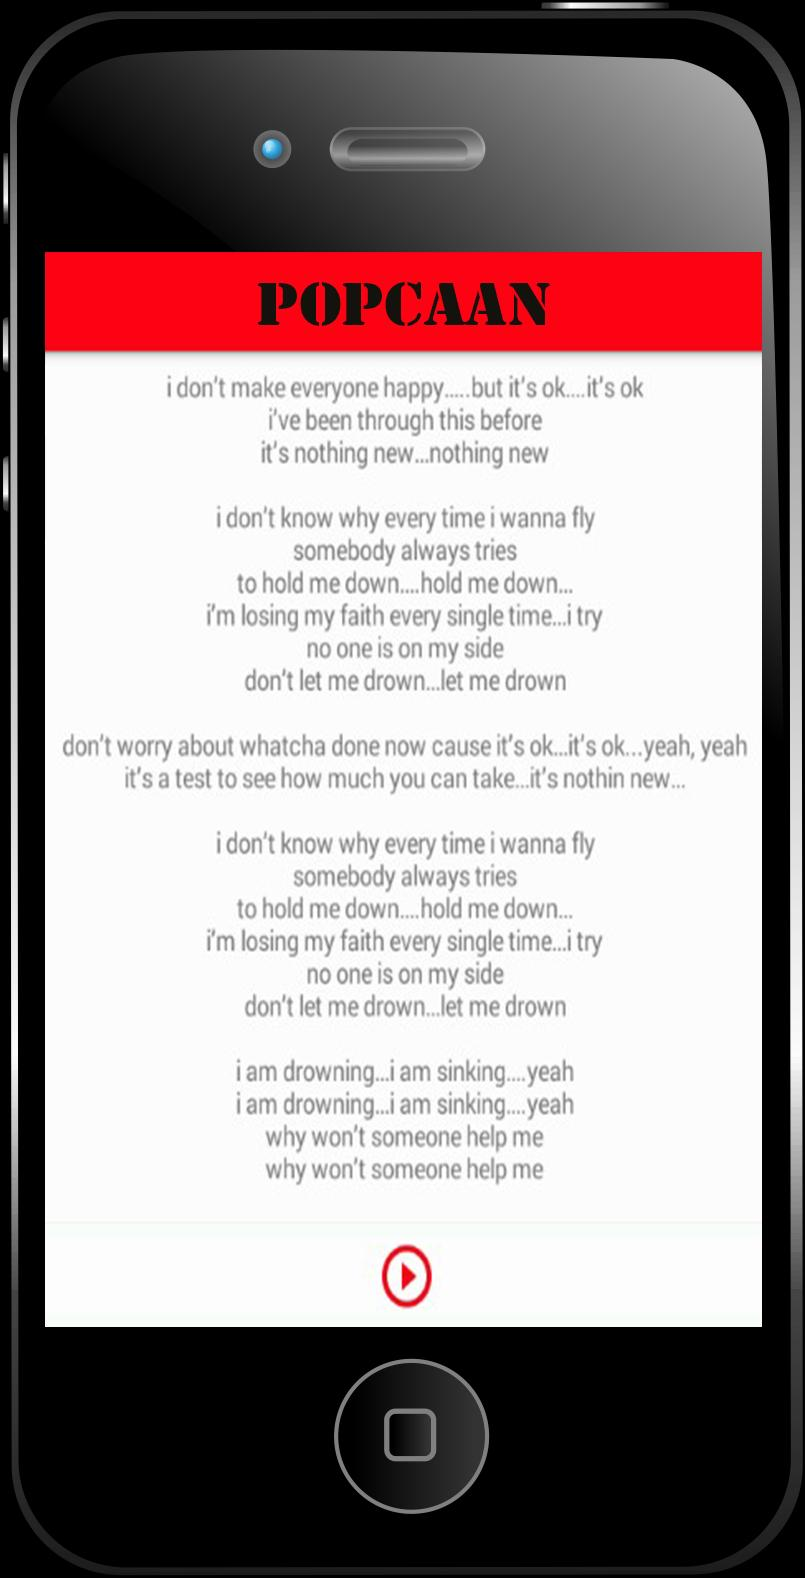 Popcaan - Hold On for Android - APK Download